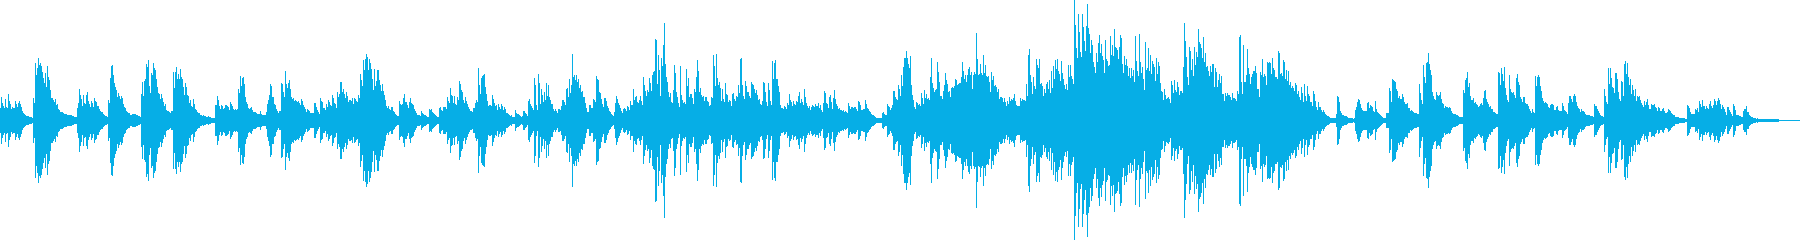 A sad piano solo song that seems to be played in a soap opera's reproduced waveform